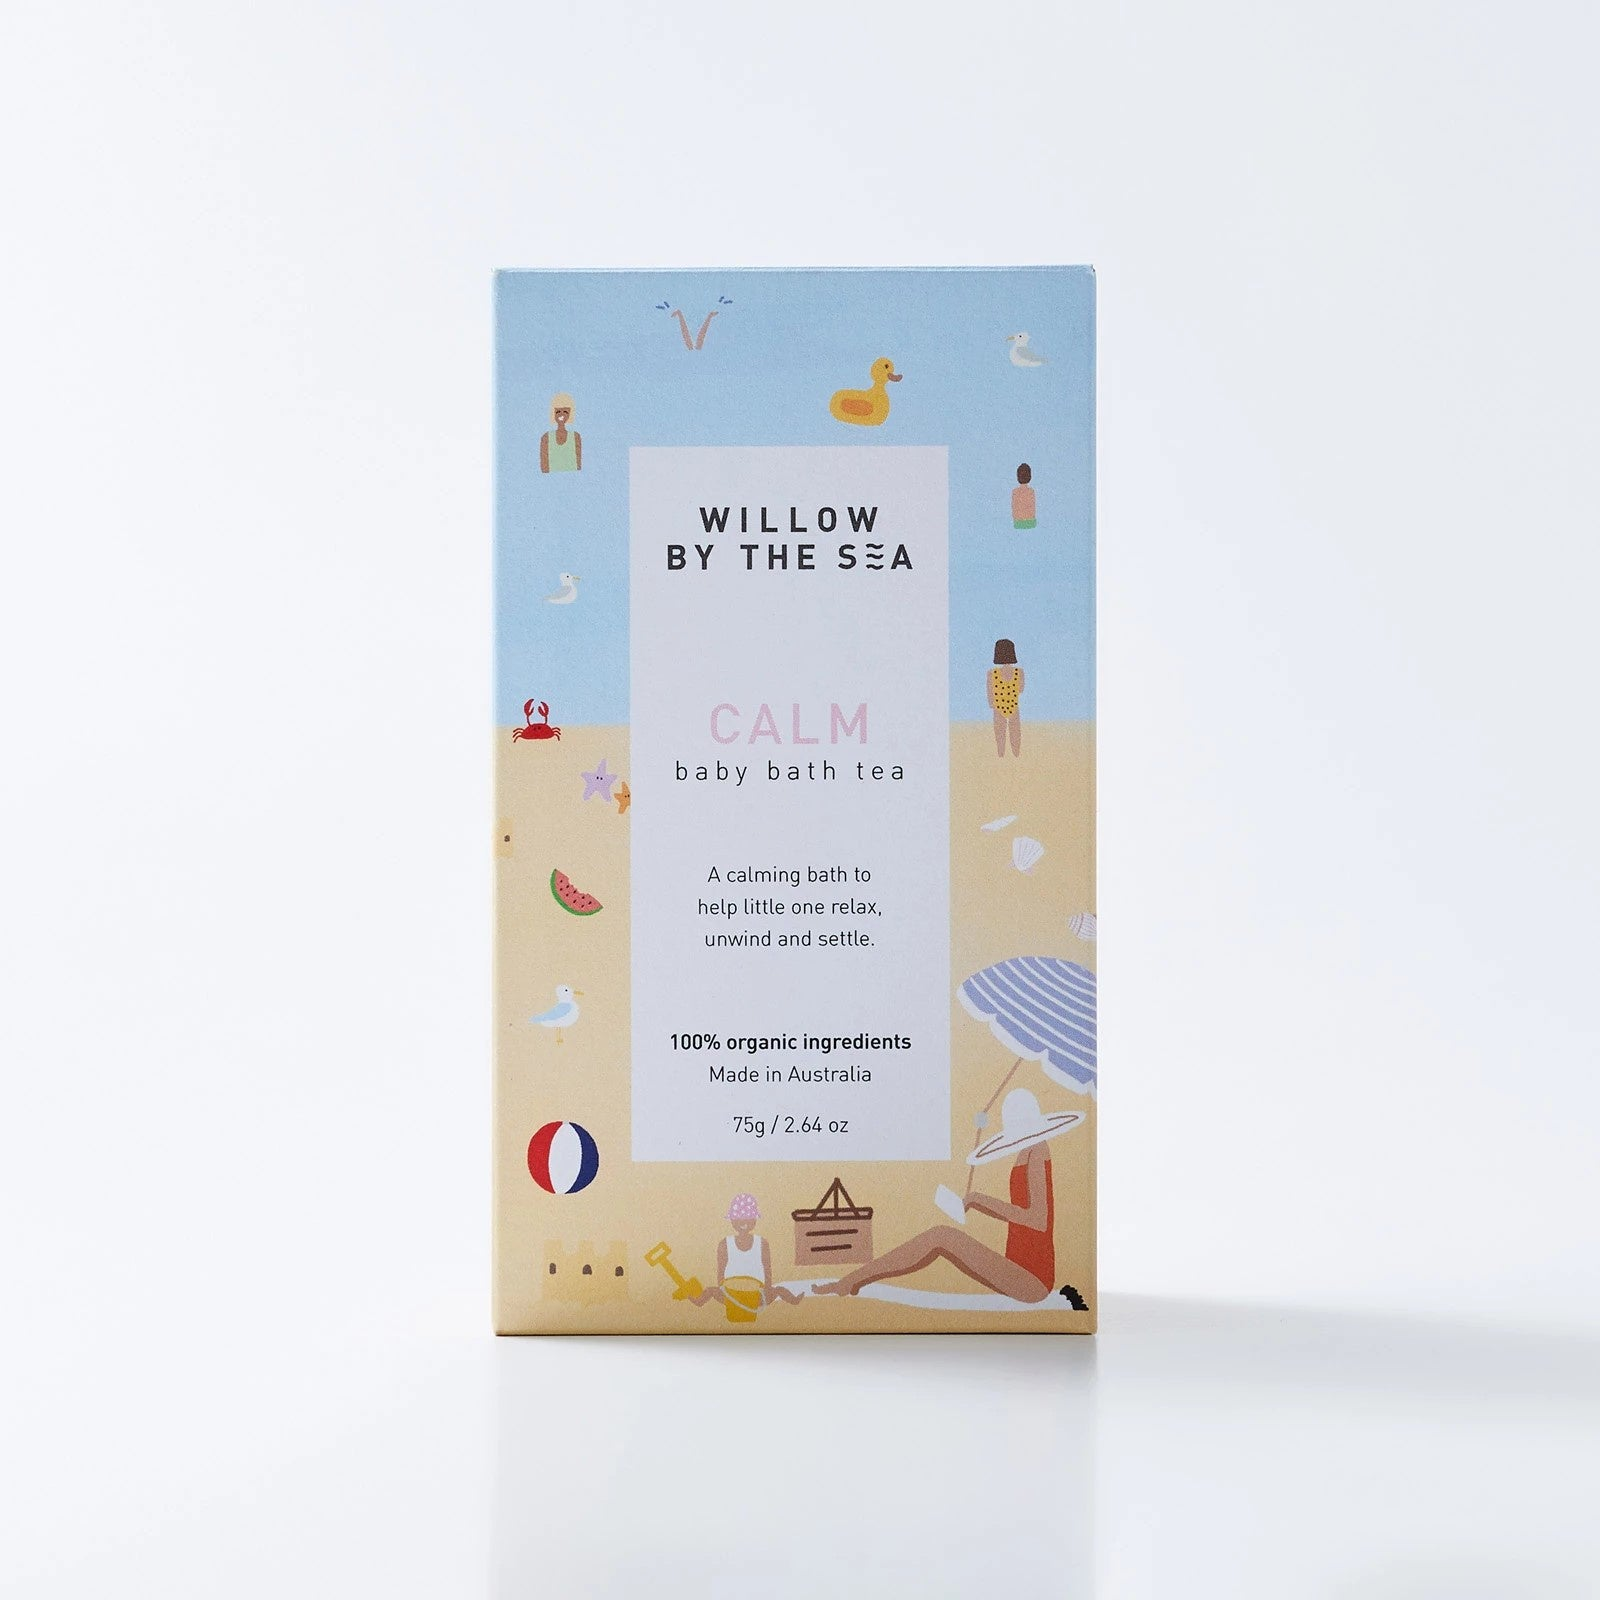 CALM BABY BATH TEA